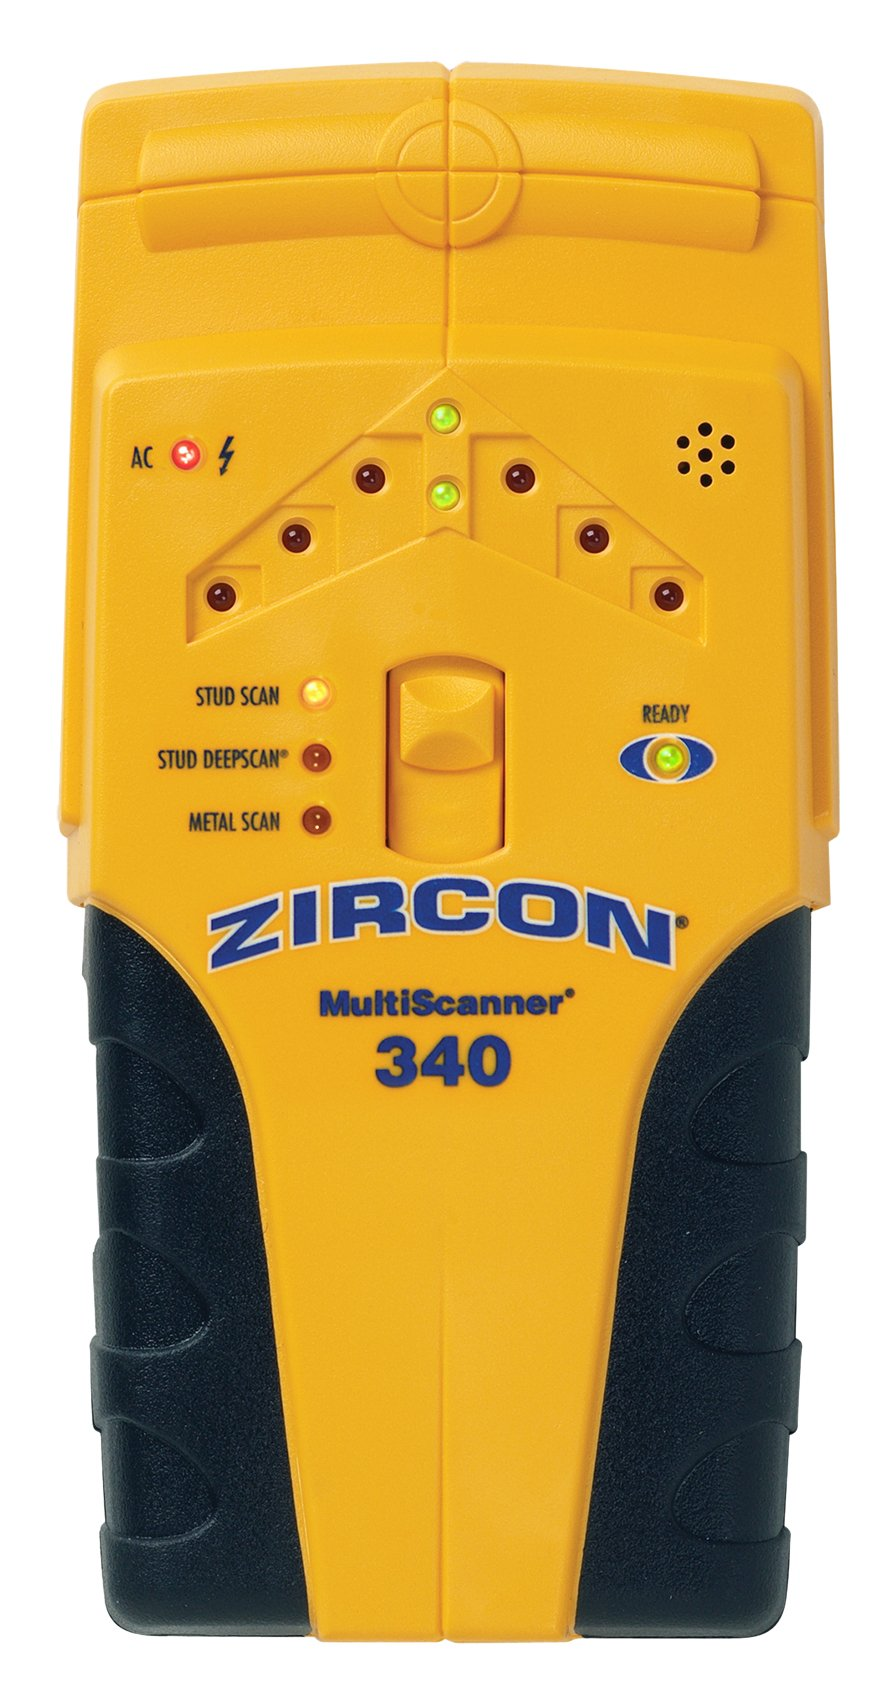 Zircon MultiScanner 340 Electronic Wall Scanner/Edge Finding Stud Finder for Wood and Metal Studs/Metal Detector for Plumbing/Live AC WireWarning Detection to Avoid Hazards